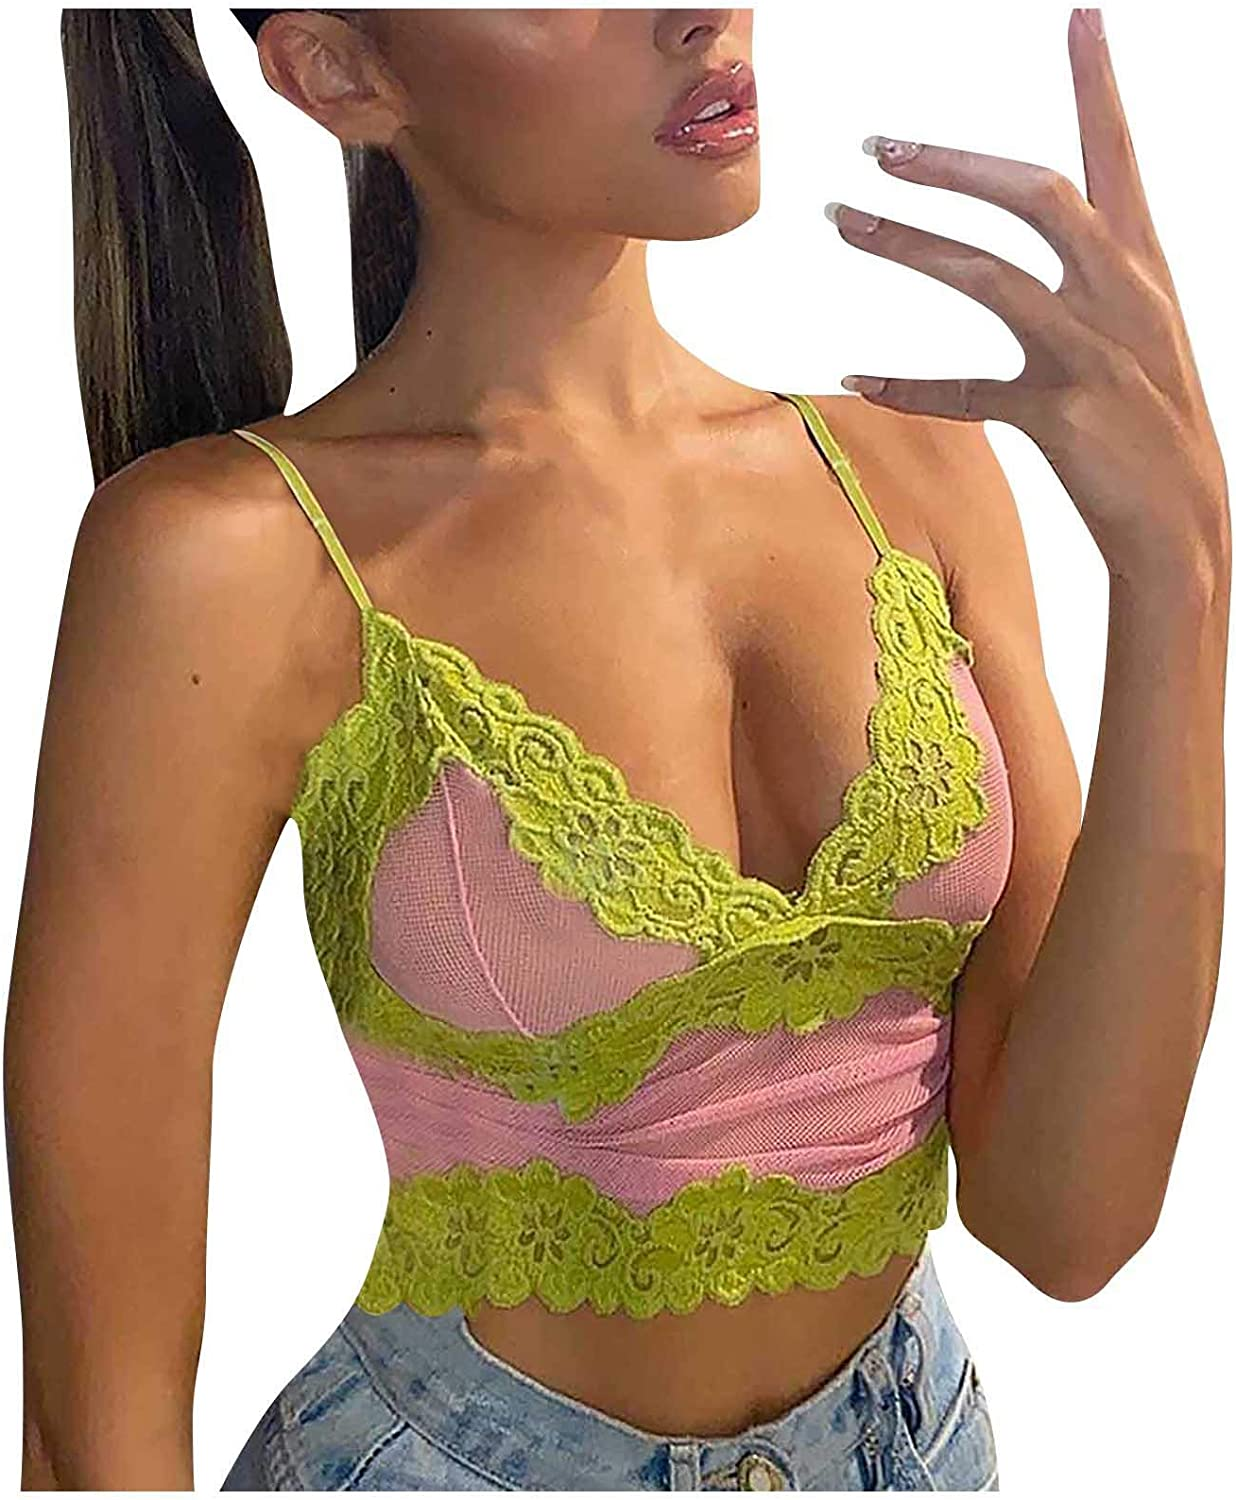 MASZONE Sexy Crop Tops for Women Solid Color Halter Neck Tank Tops Slim-fit Spaghetti Strap Camisole Tops Streetwear